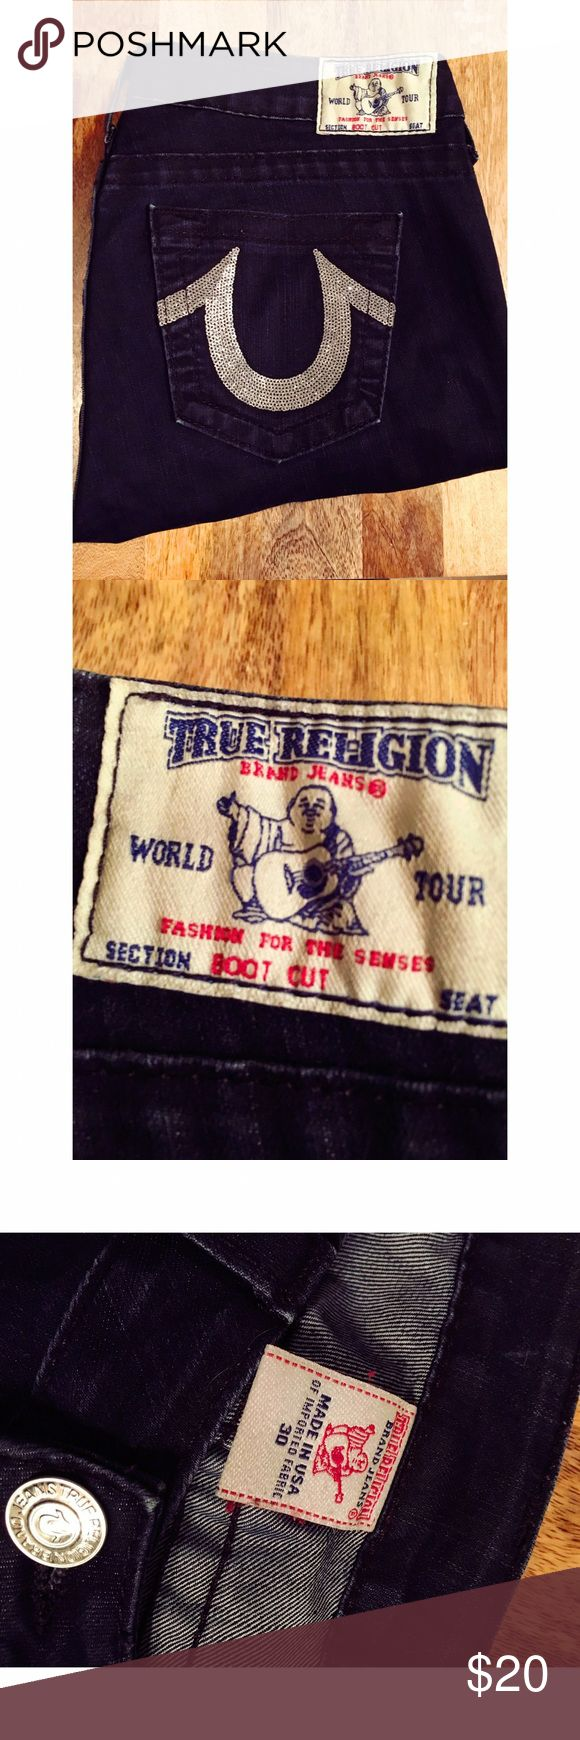 Size 30 True Religion jeans Size 30 true religion jeans. Dark color with sparkly designs on back. Boot cut. Super cute and stretchy. Have some ware on the bottom of legs. True Religion Jeans Boot Cut